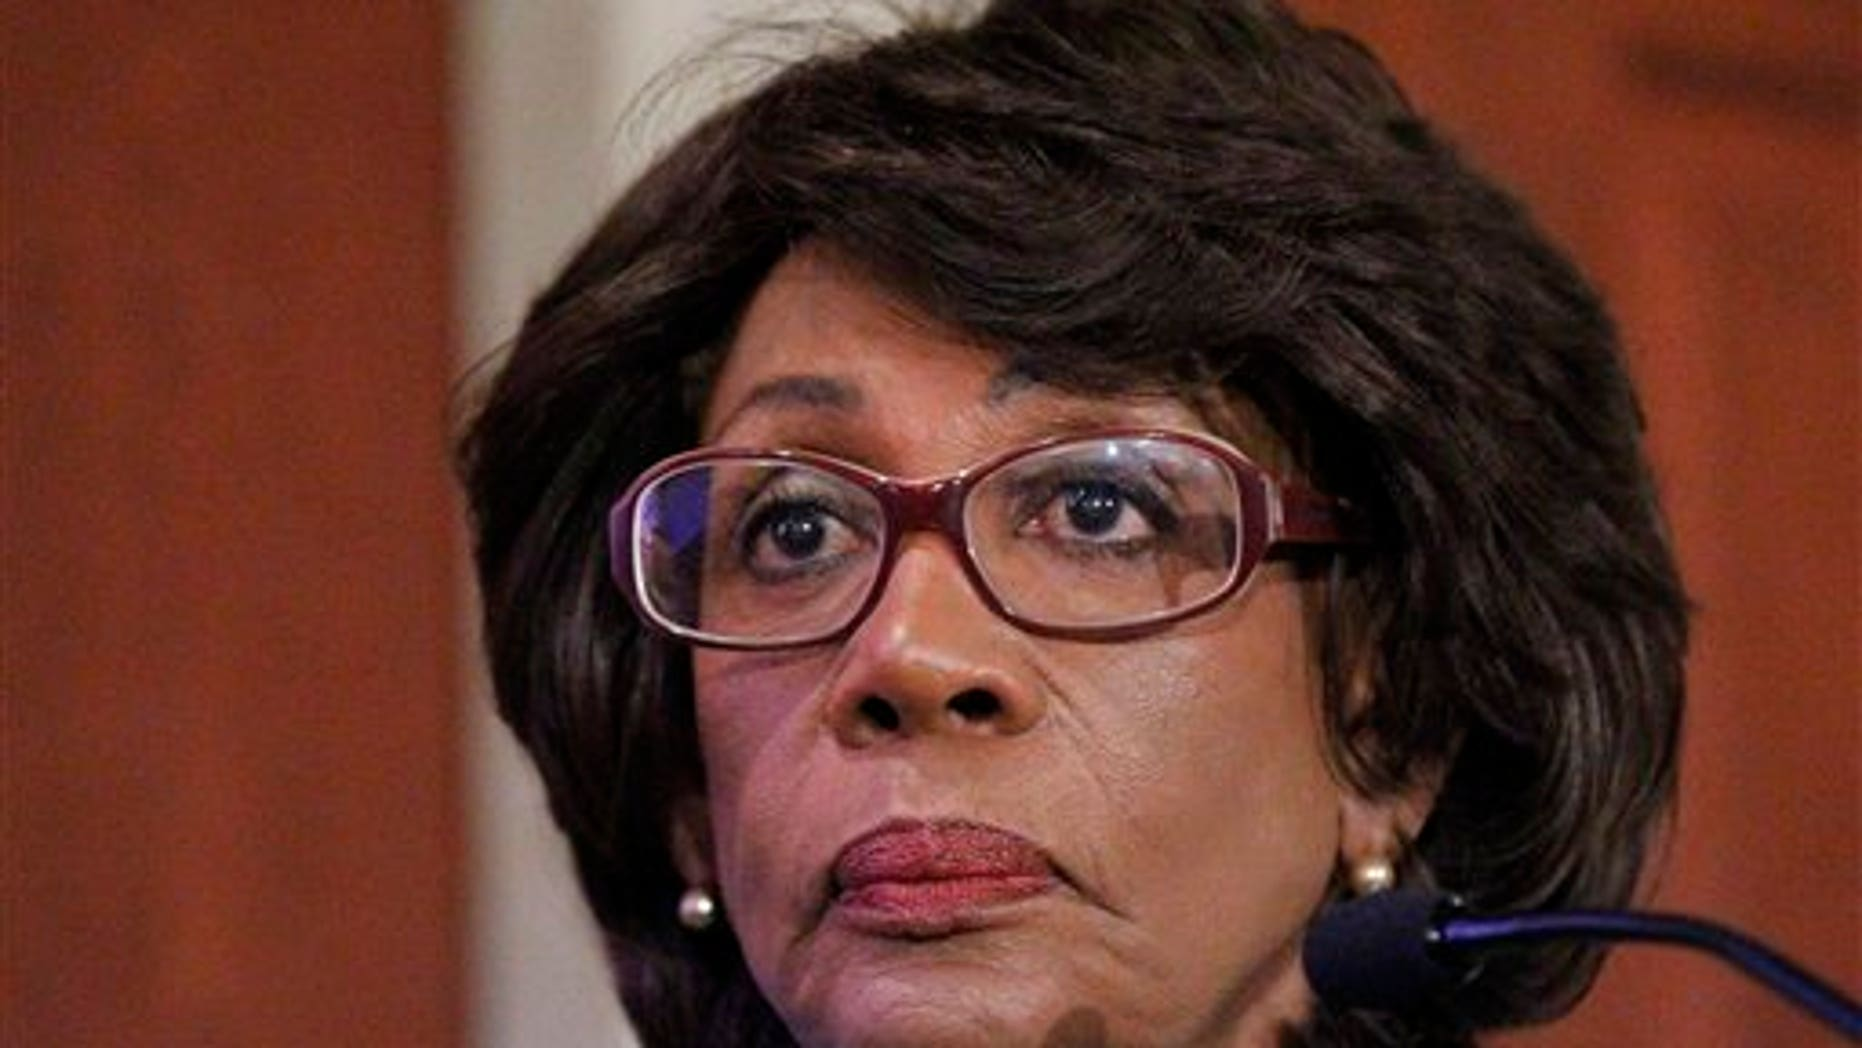 Rep. Maxine Waters, D-Calif., during her news conference on Capitol Hill in Washington, Friday, Aug. 13, 2010, to discuss the House ethics committee investigation. (AP Photo/Pablo Martinez Monsivais)